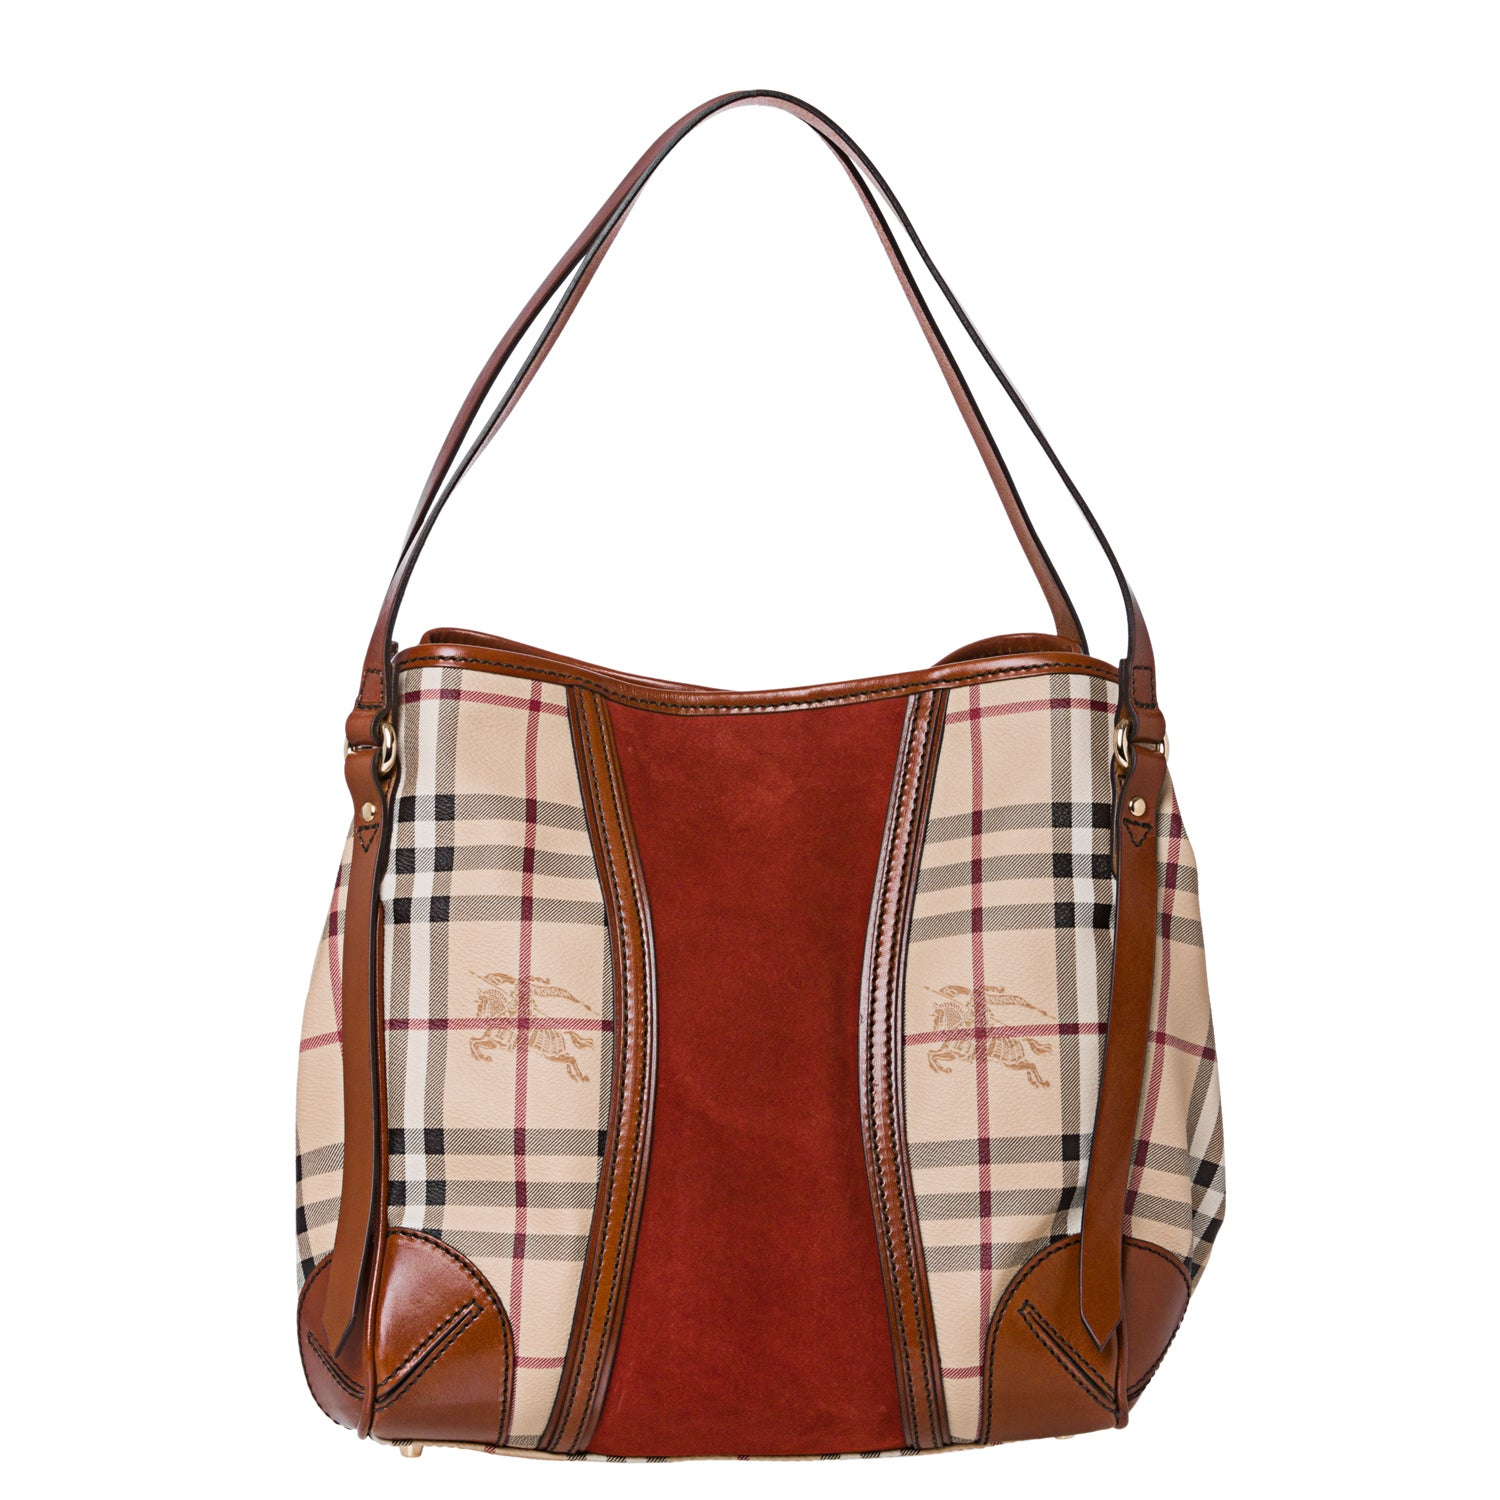 492a3a7b157b Shop Burberry Small Haymarket Check  Rust Suede Tote Bag - Free Shipping  Today - Overstock.com - 6980363